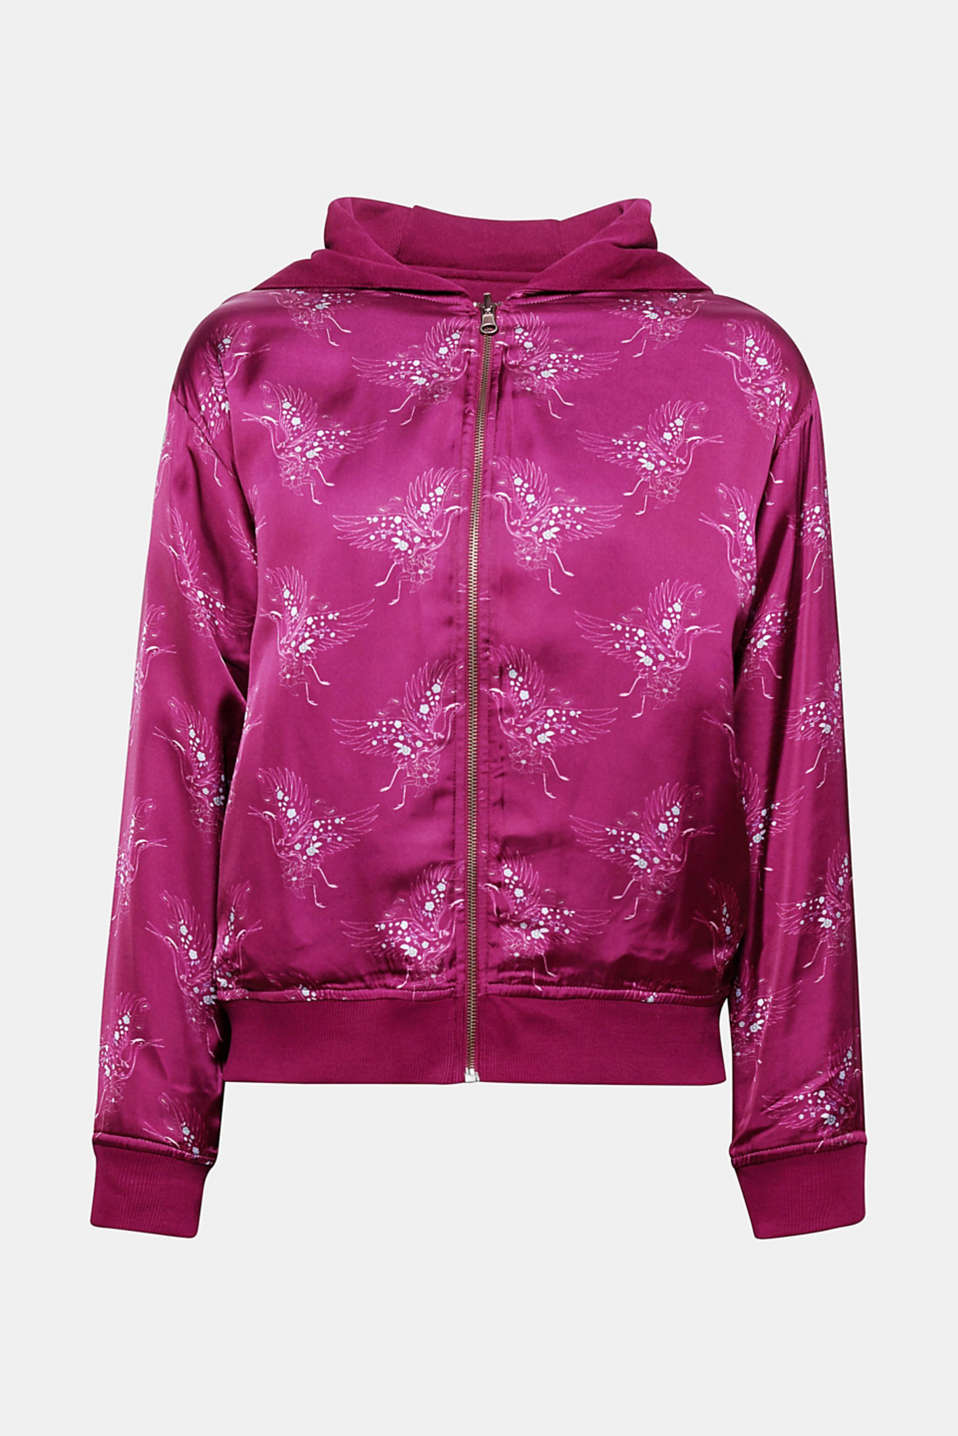 This bomber jacket made of shimmering satin with an all-over print will give your look a feminine, sporty twist.